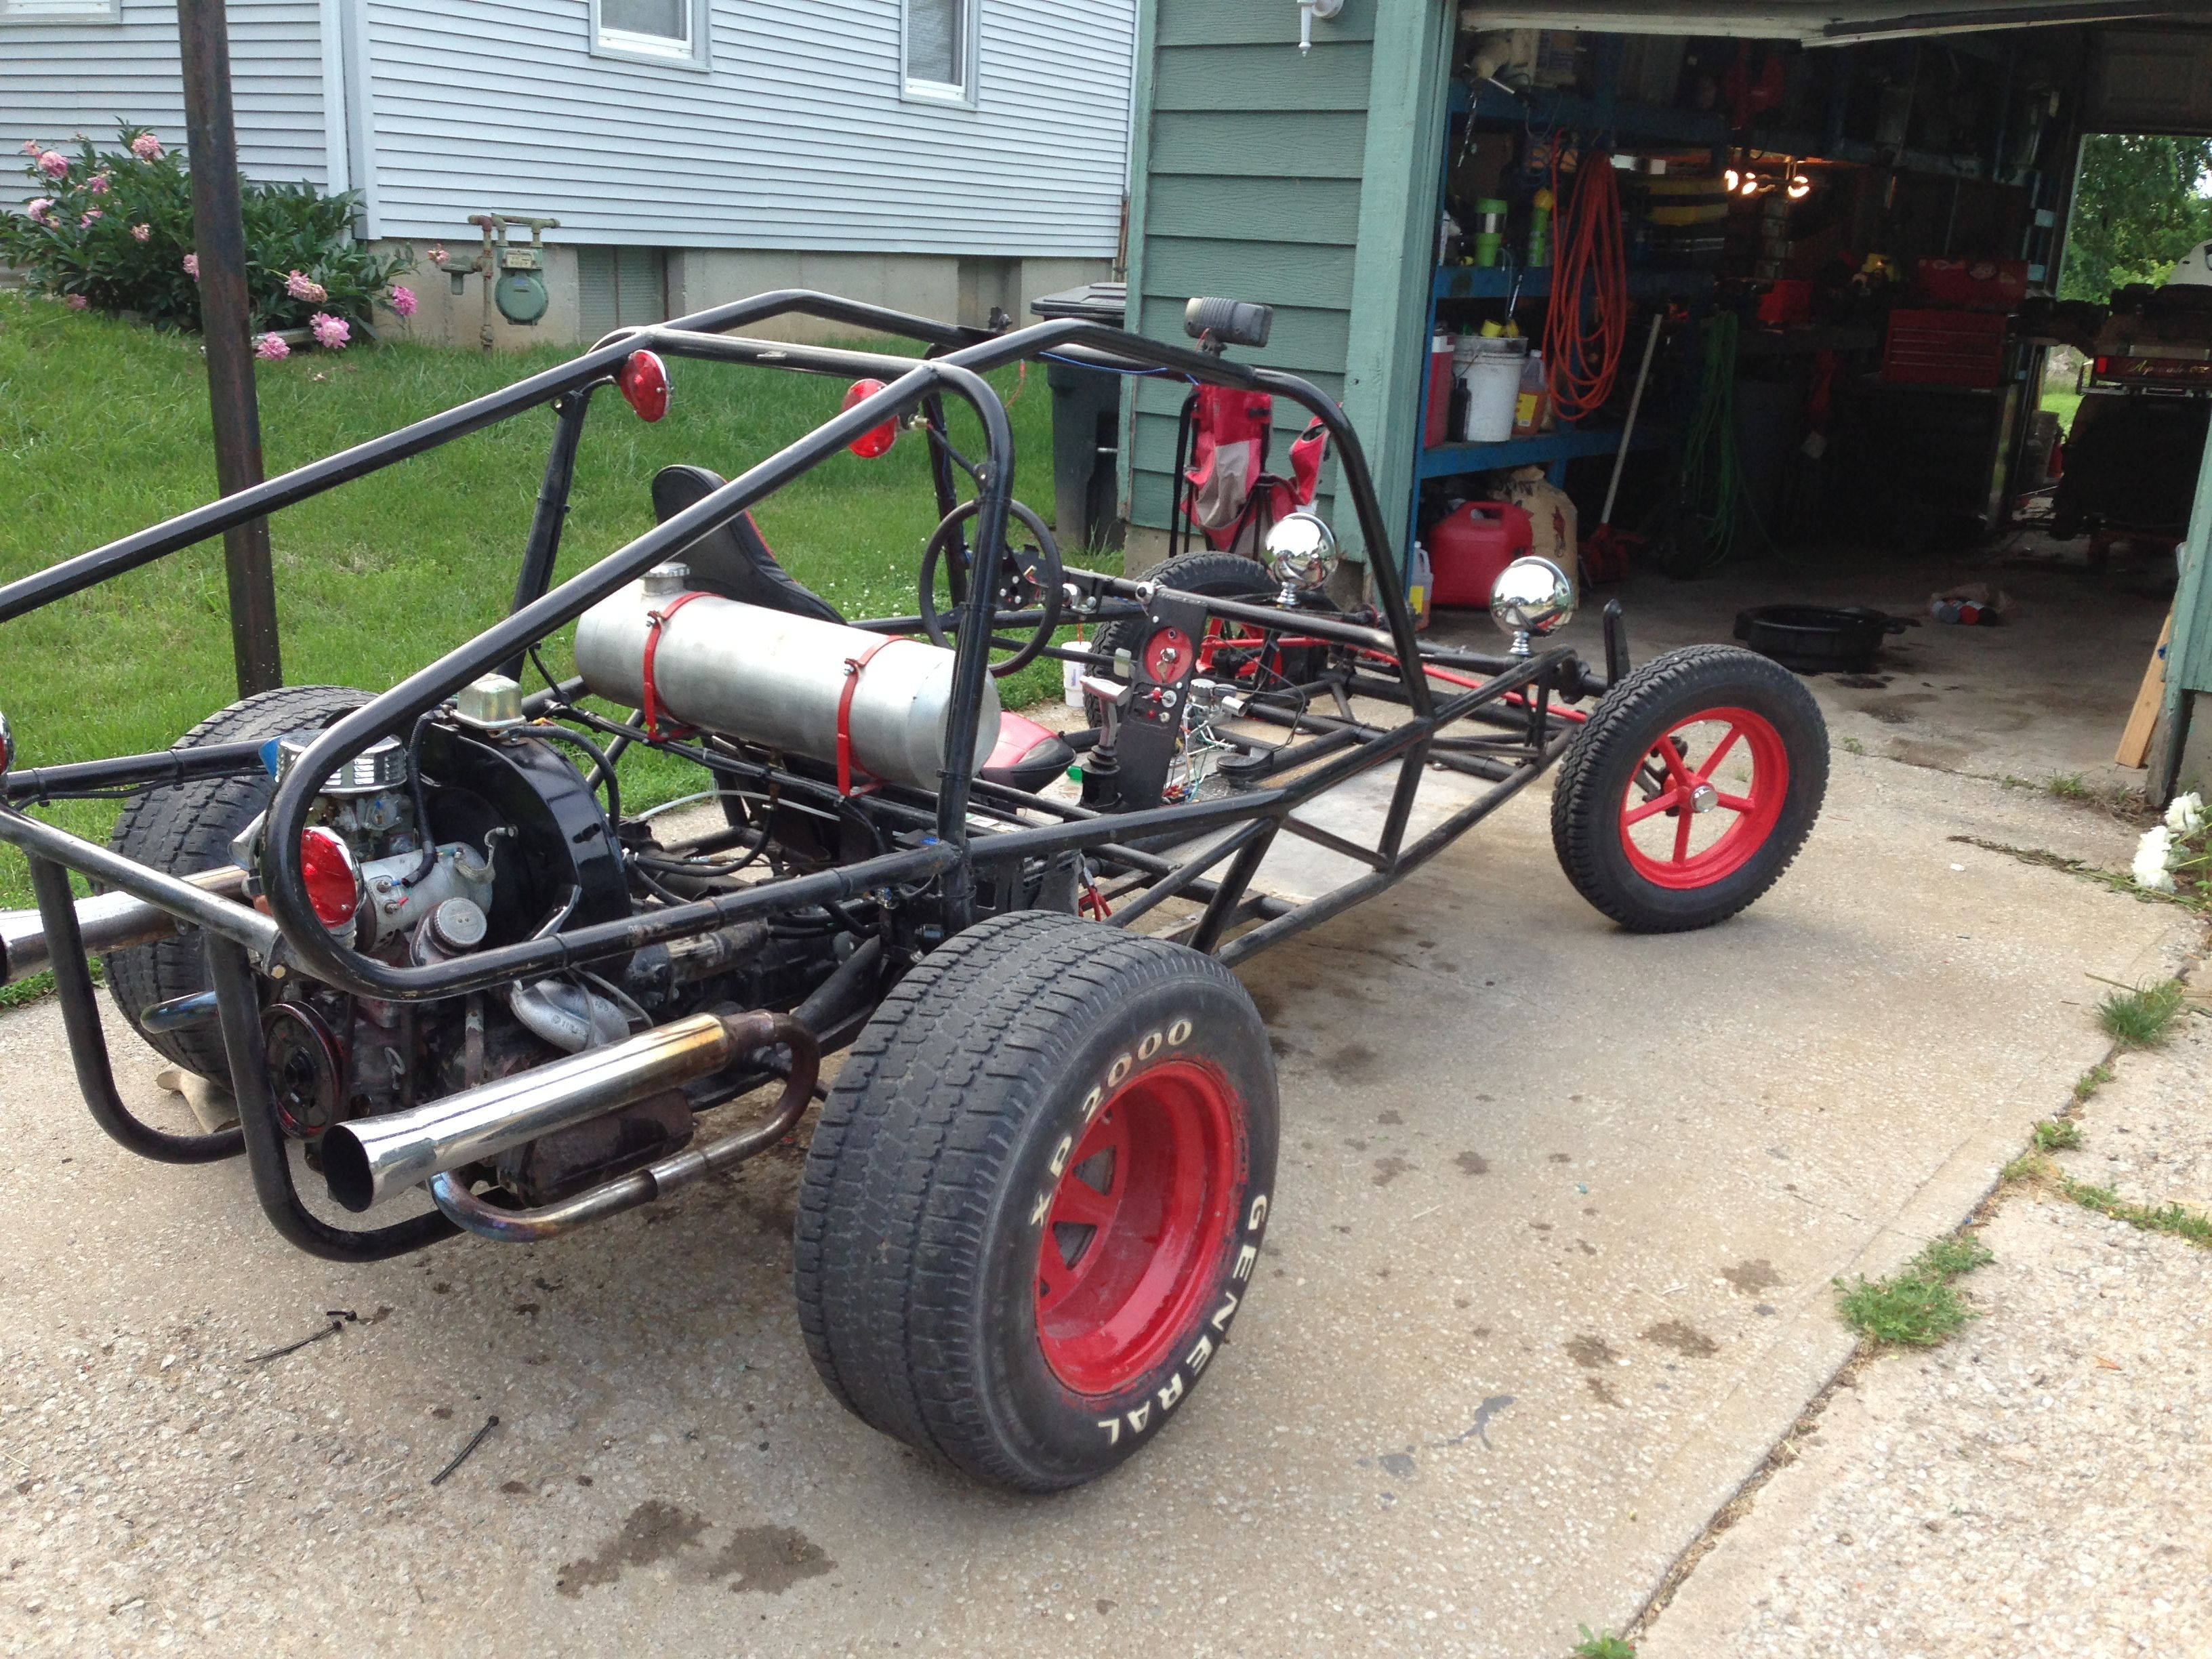 vw 1600 dual port dune buggy sand rail 2 year build dune buggy pinterest sand rail. Black Bedroom Furniture Sets. Home Design Ideas